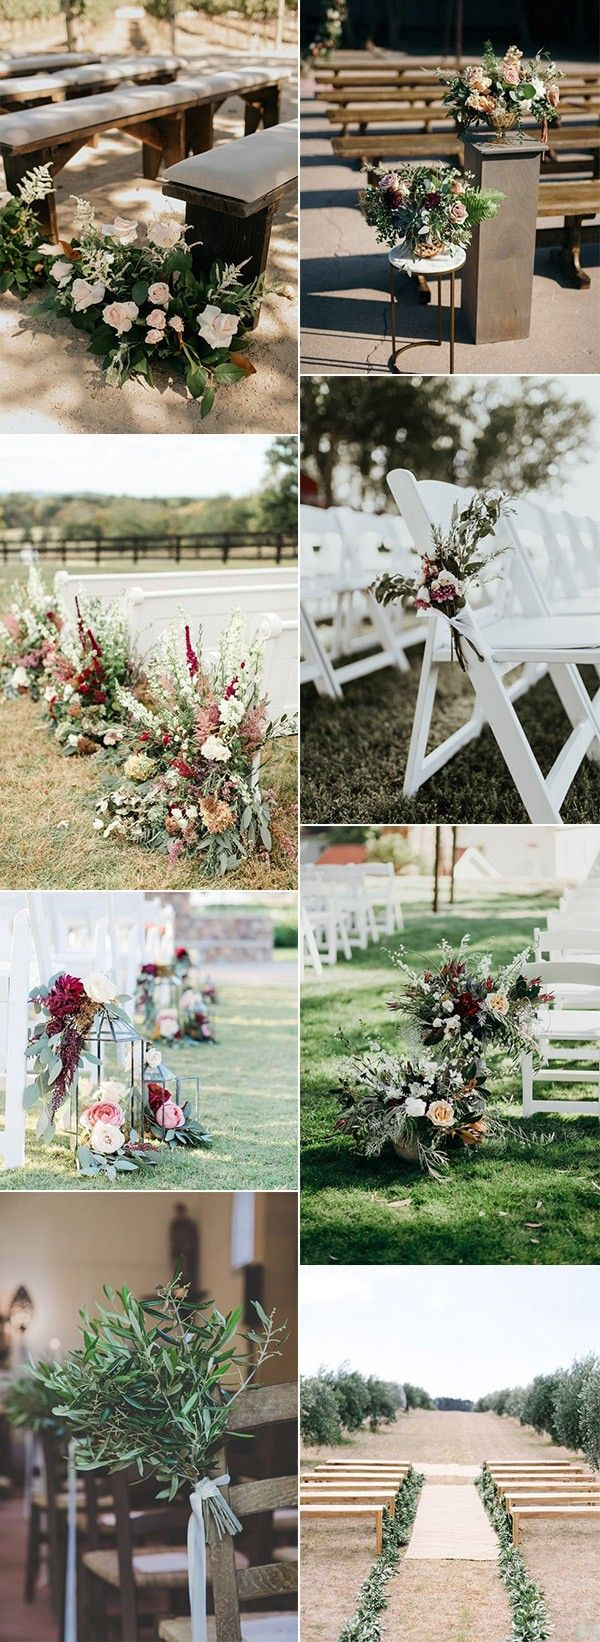 Wedding decorations for outside january 2019  Fall Wedding Aisle Decoration Ideas to Love  Wedding Ideas